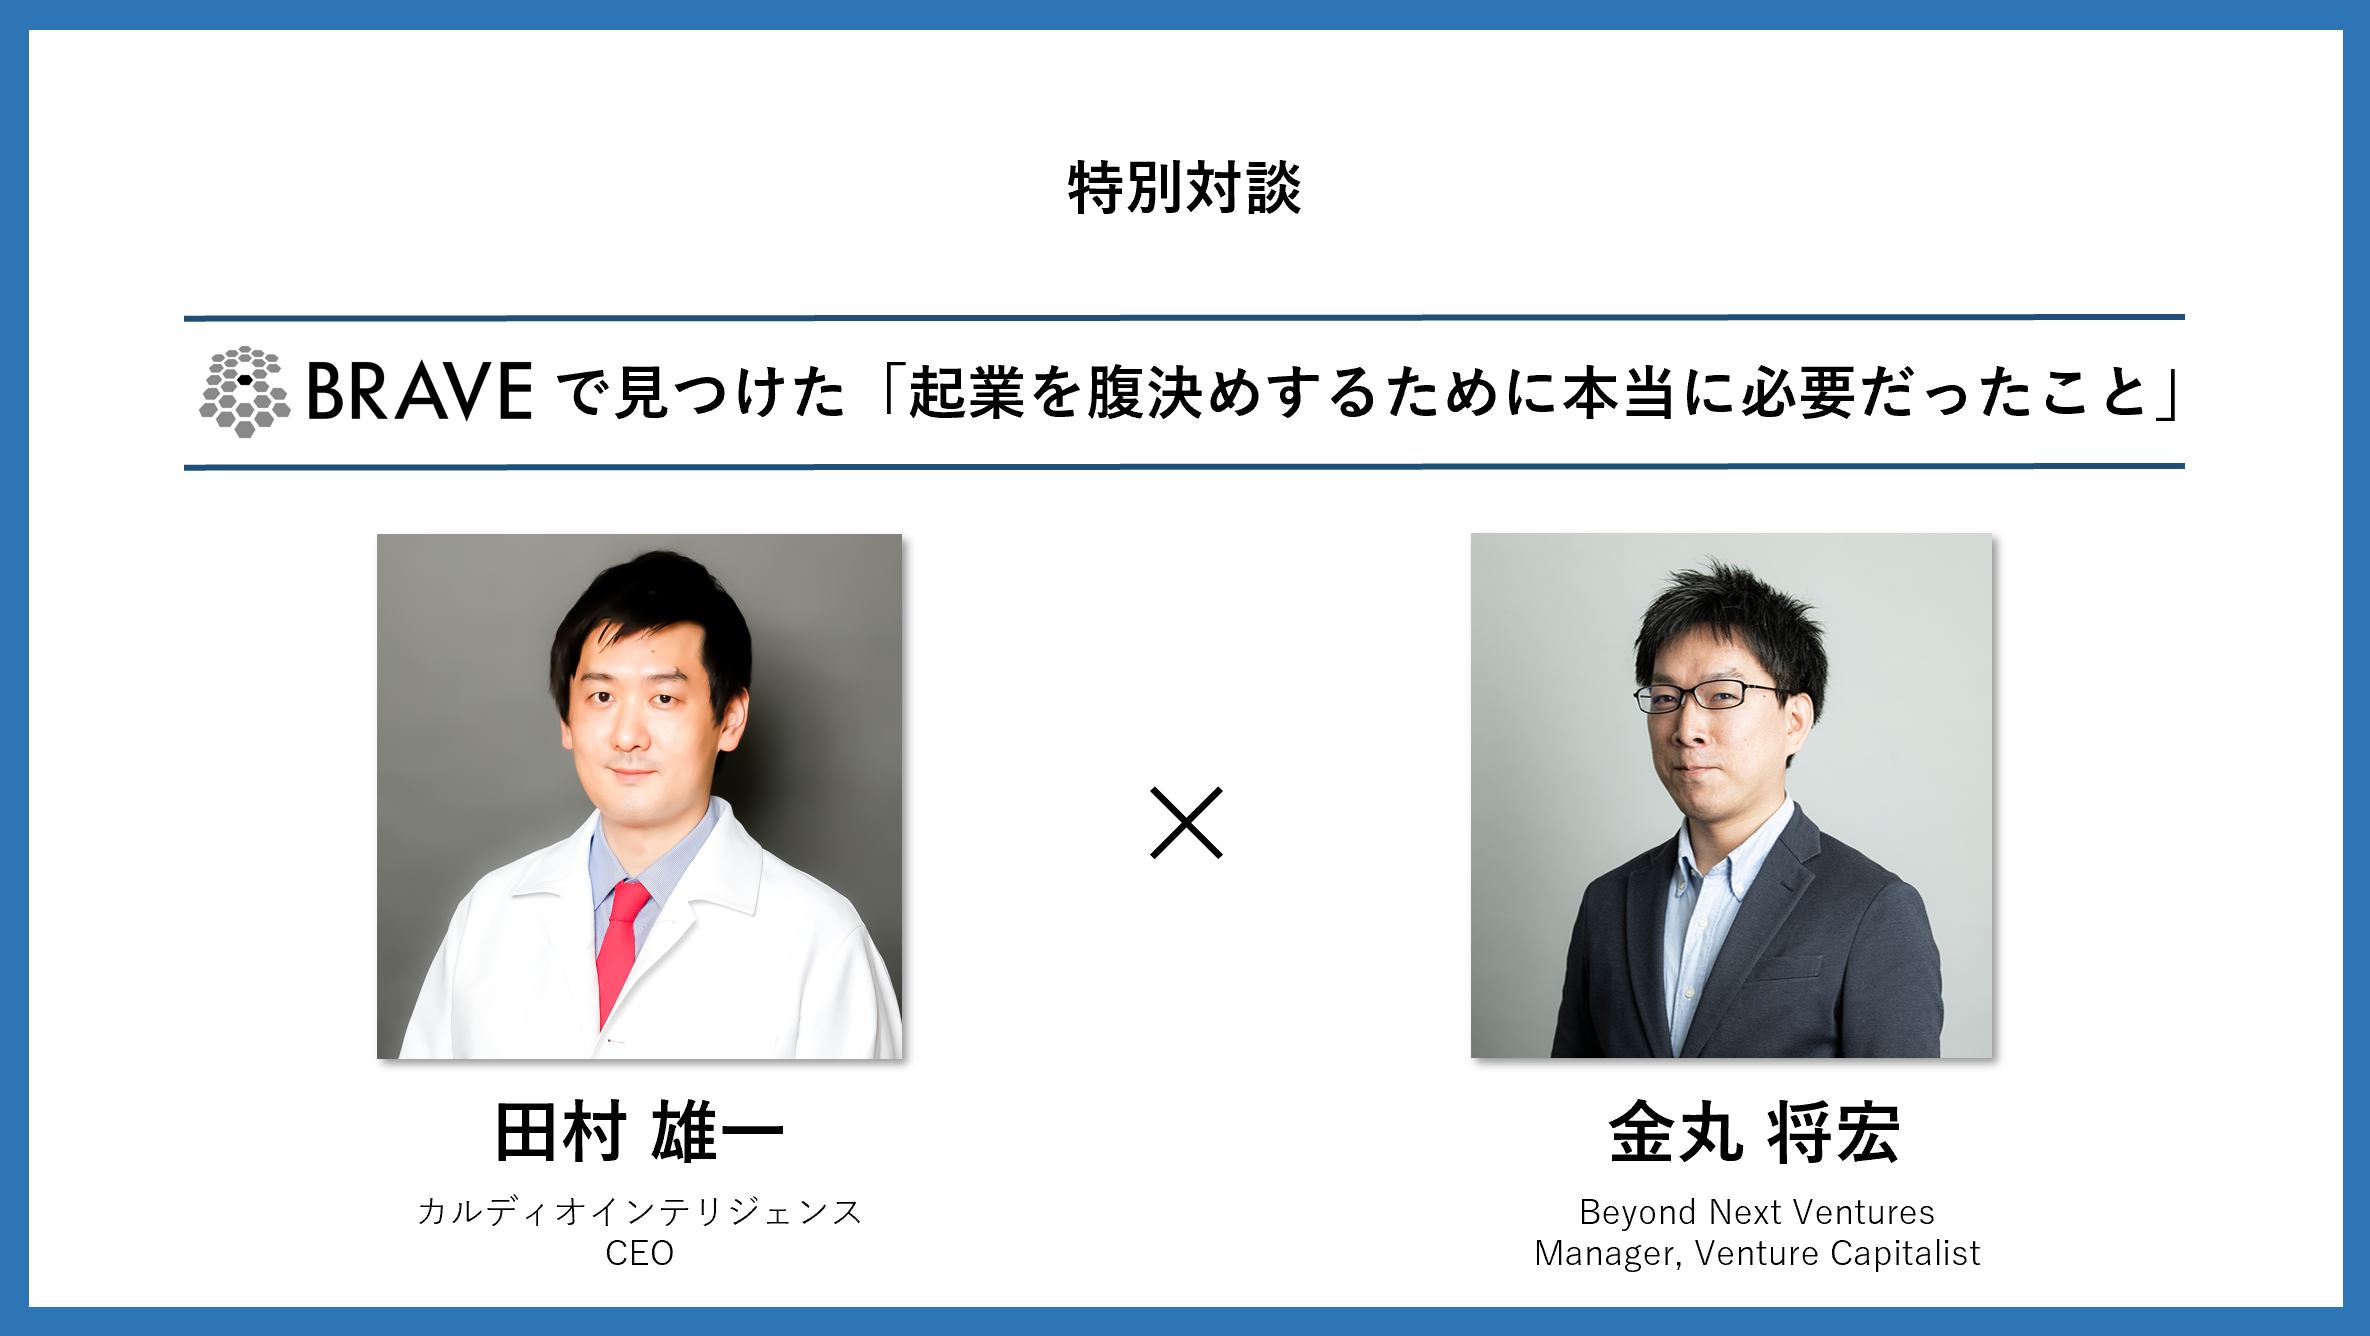 The Medical AI TimesにCEO田村の特別対談記事が掲載されました